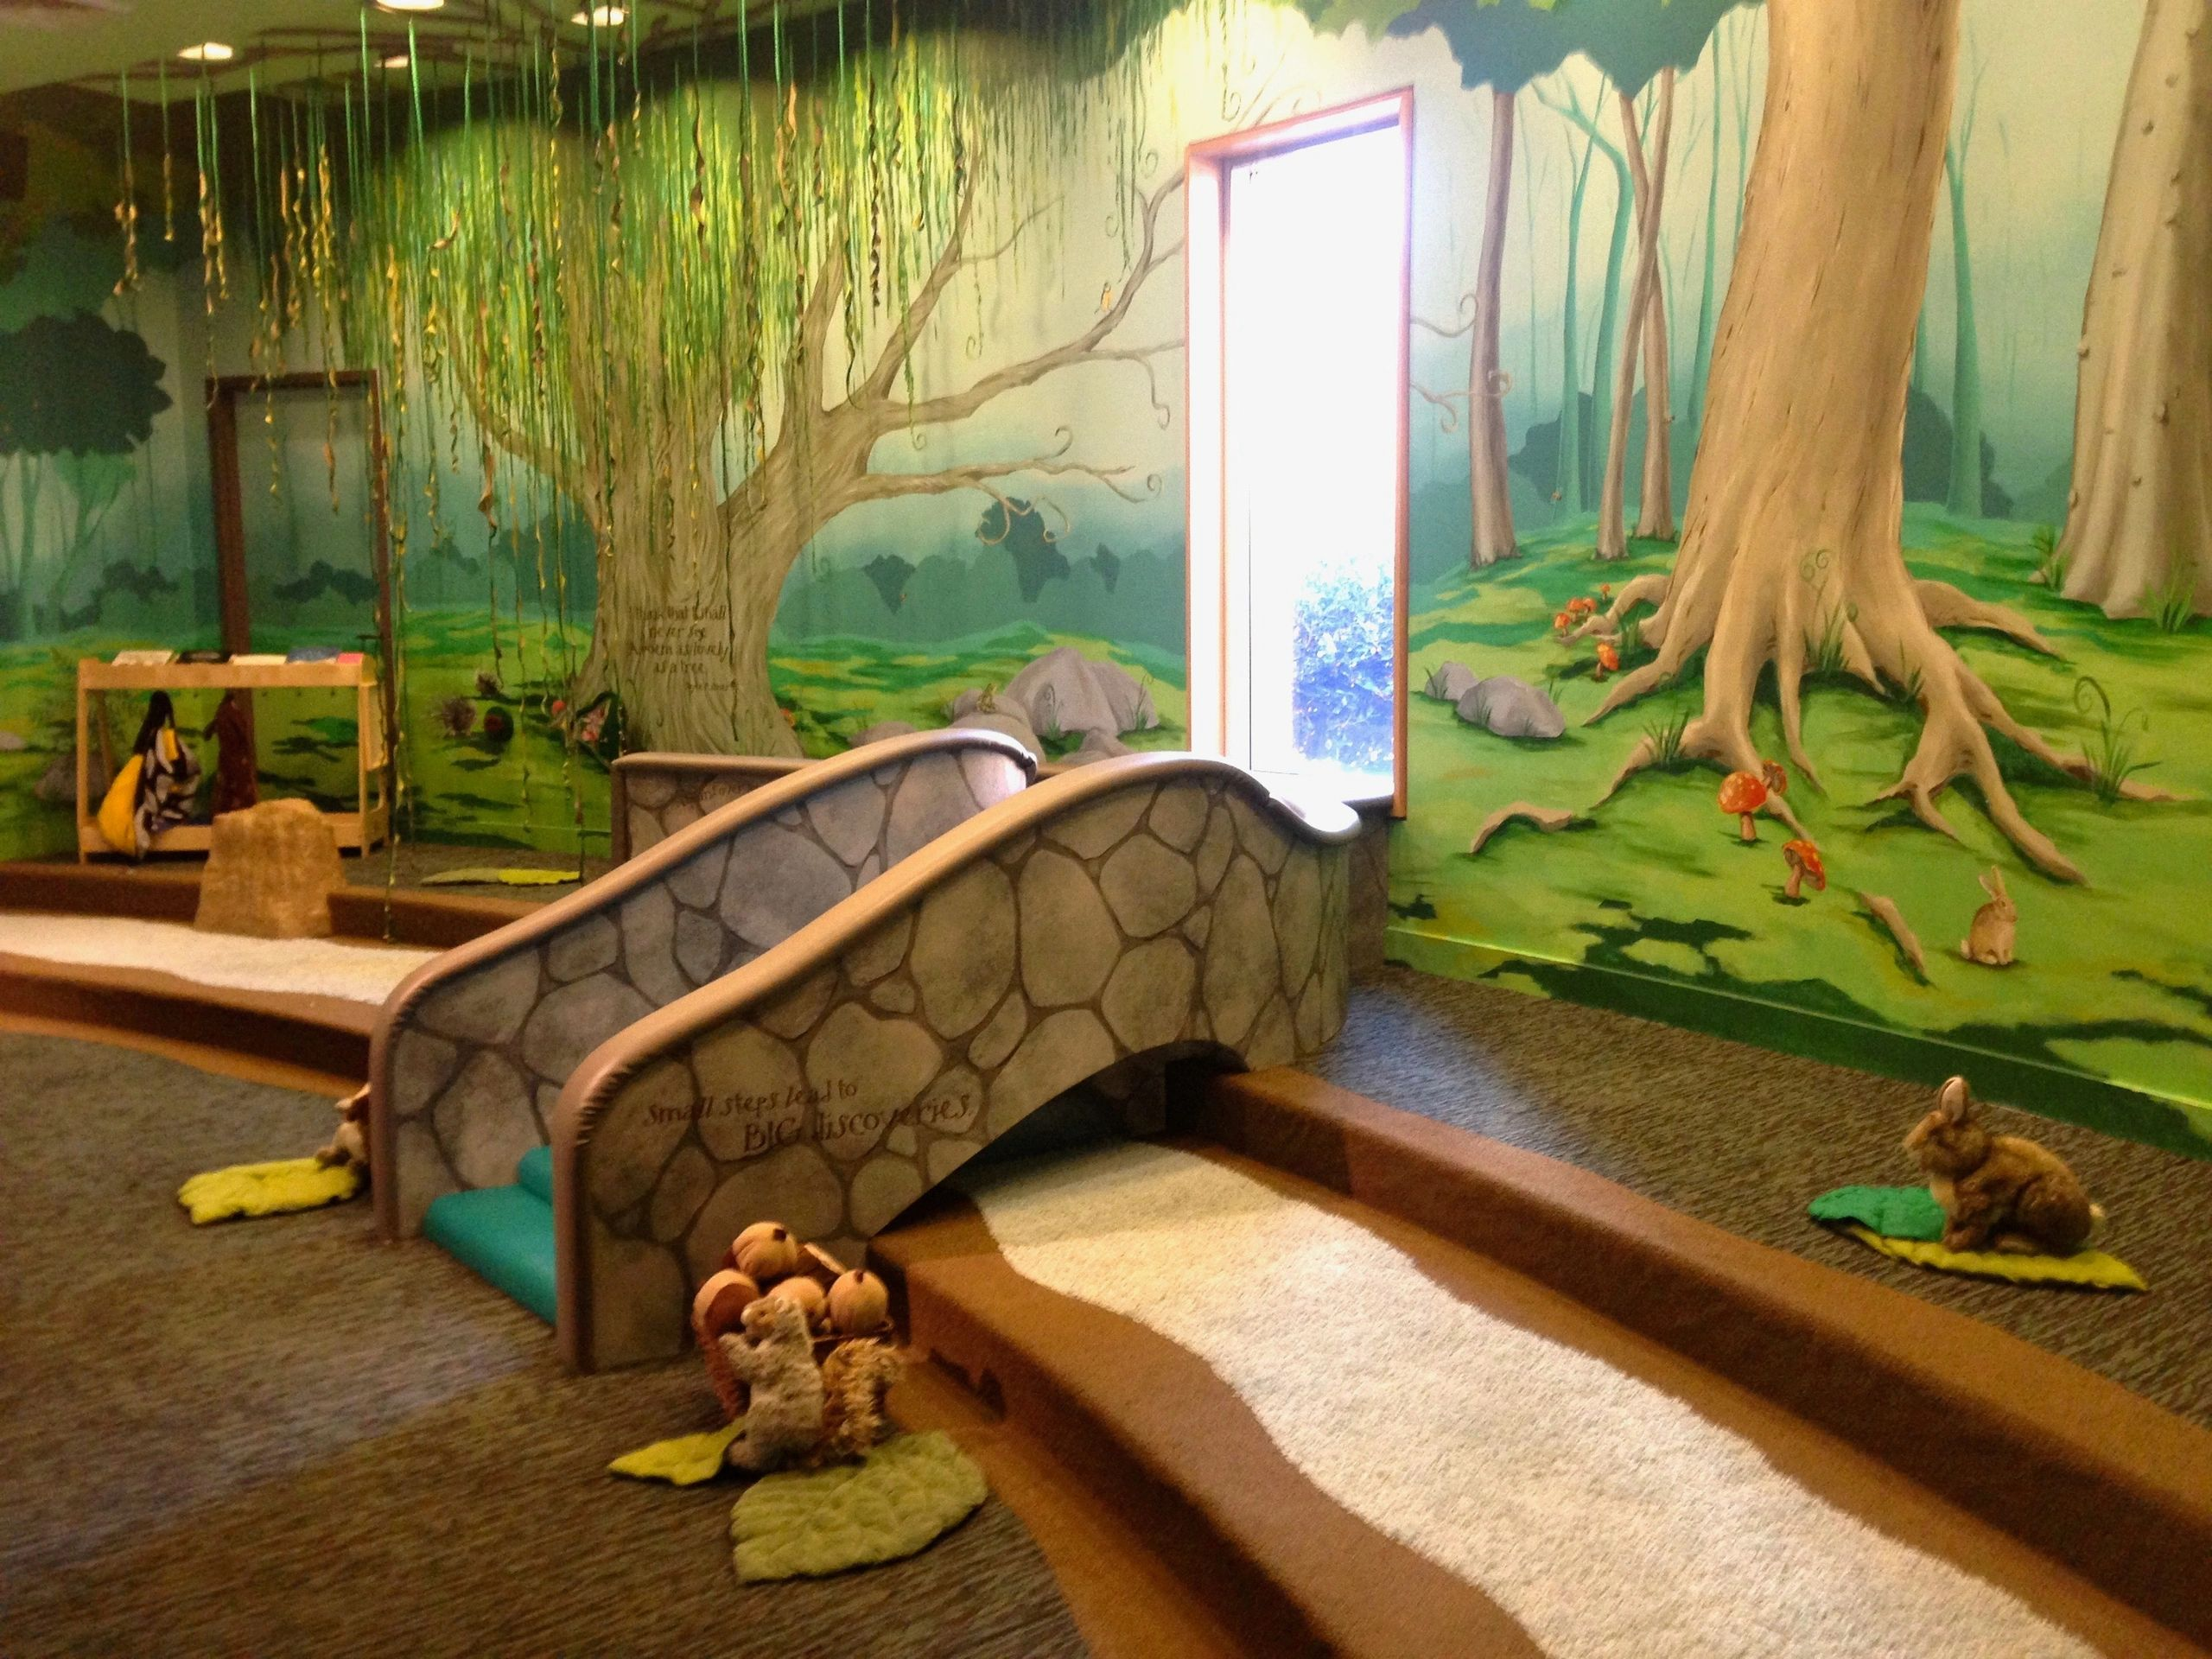 "{""blocks"":[{""key"":""94ifb"",""text"":""Physical spaces and entrance ways become invitations for exploration with interactive murals such as this one in Toddler's Hollow at Marbles Kids Museum, by Denise Hughes"",""type"":""unstyled"",""depth"":0,""inlineStyleRanges"":[],""entityRanges"":[],""data"":{}}],""entityMap"":{}}"